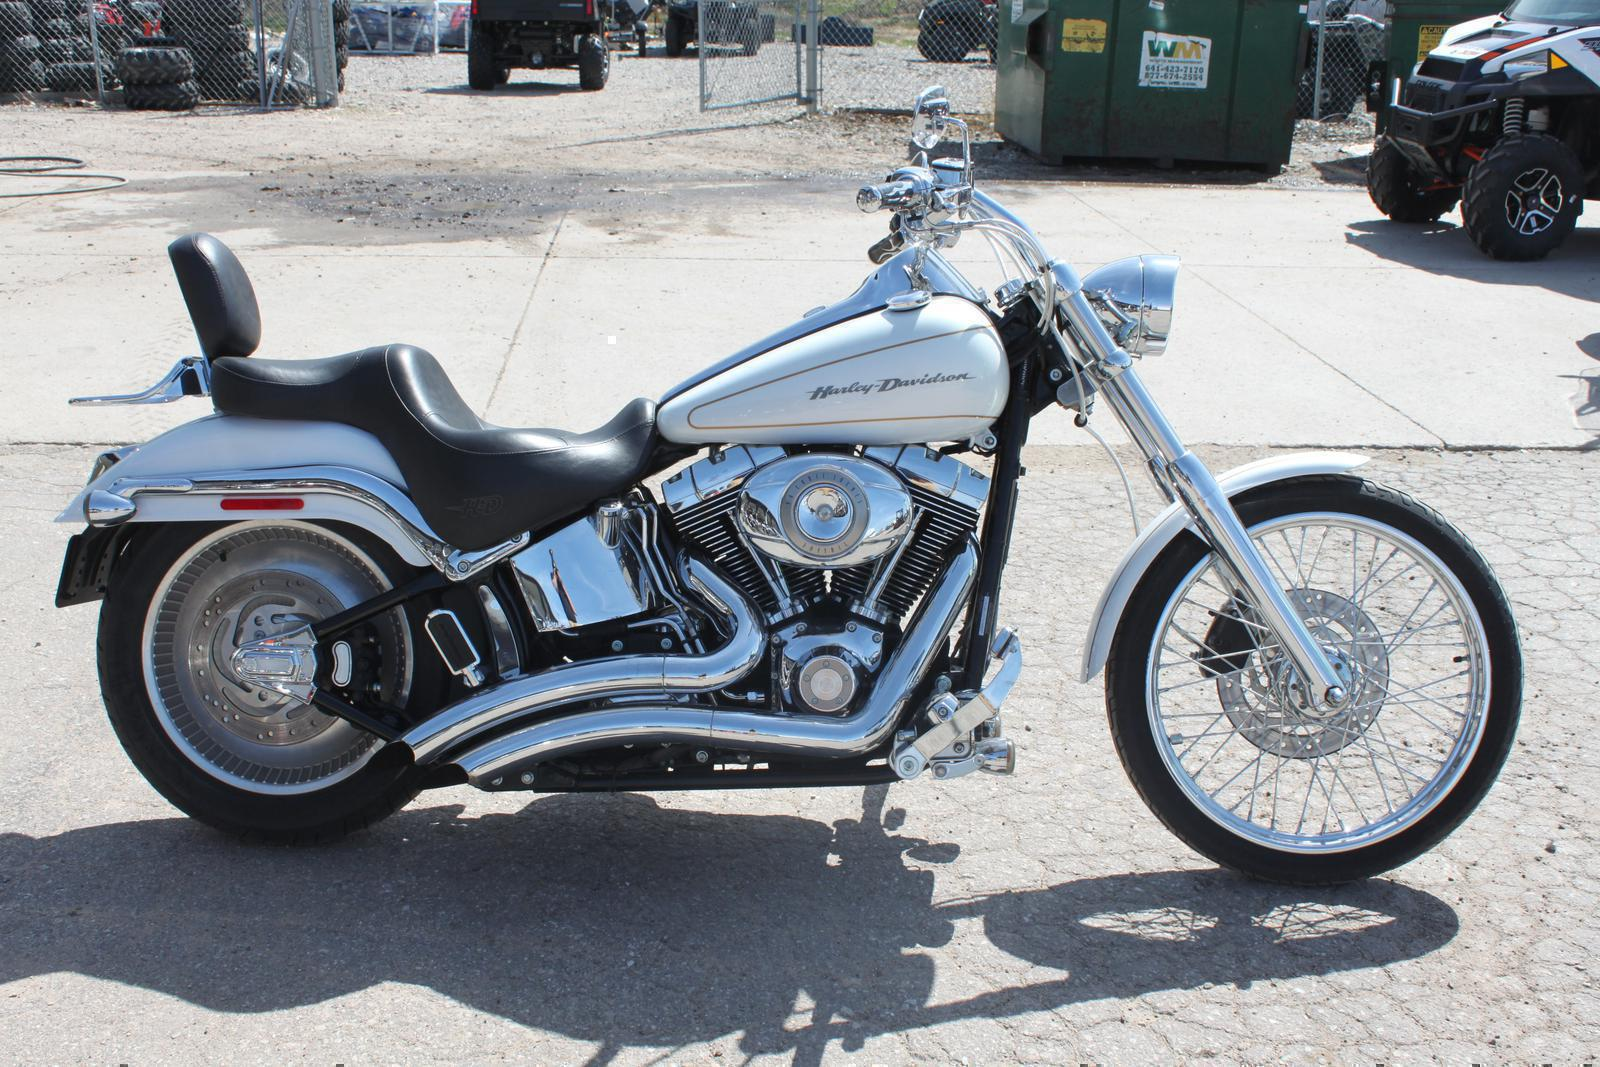 Cache moreover Fxstdi also D Tall T Bars And Fairing On Softail Img besides Fxstdi additionally F F A Ea C A. on fxstd softail deuce 2004 harley davidson